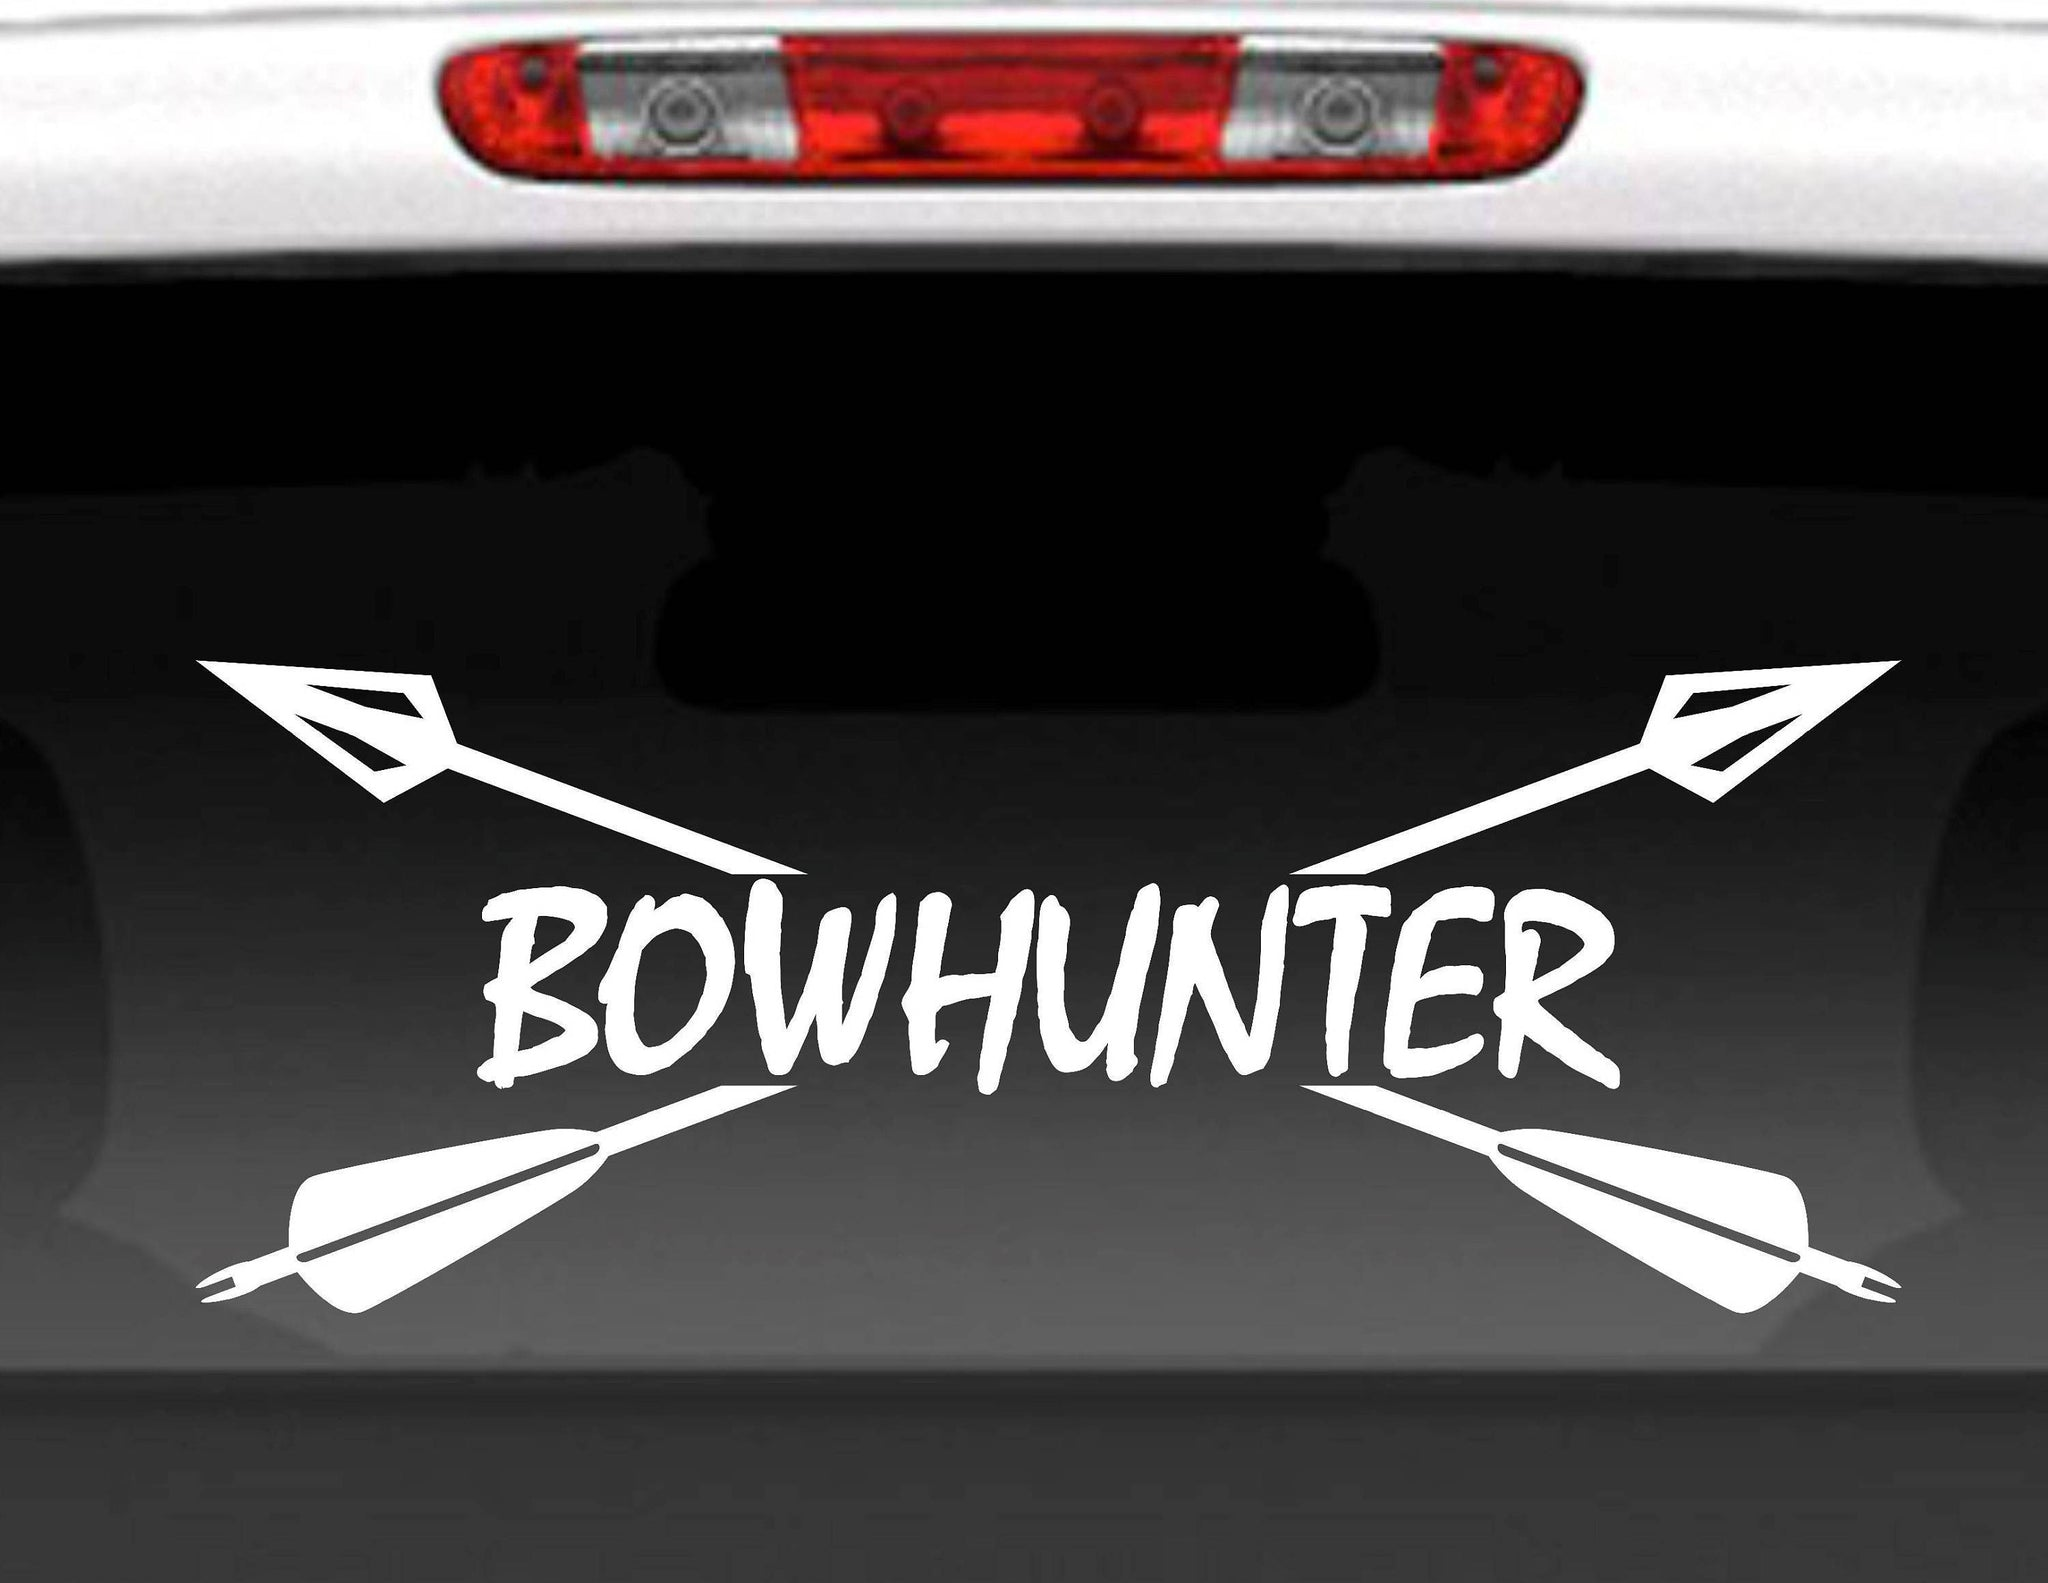 Bowhunter Crossed Arrows Vinyl Decal Sticker